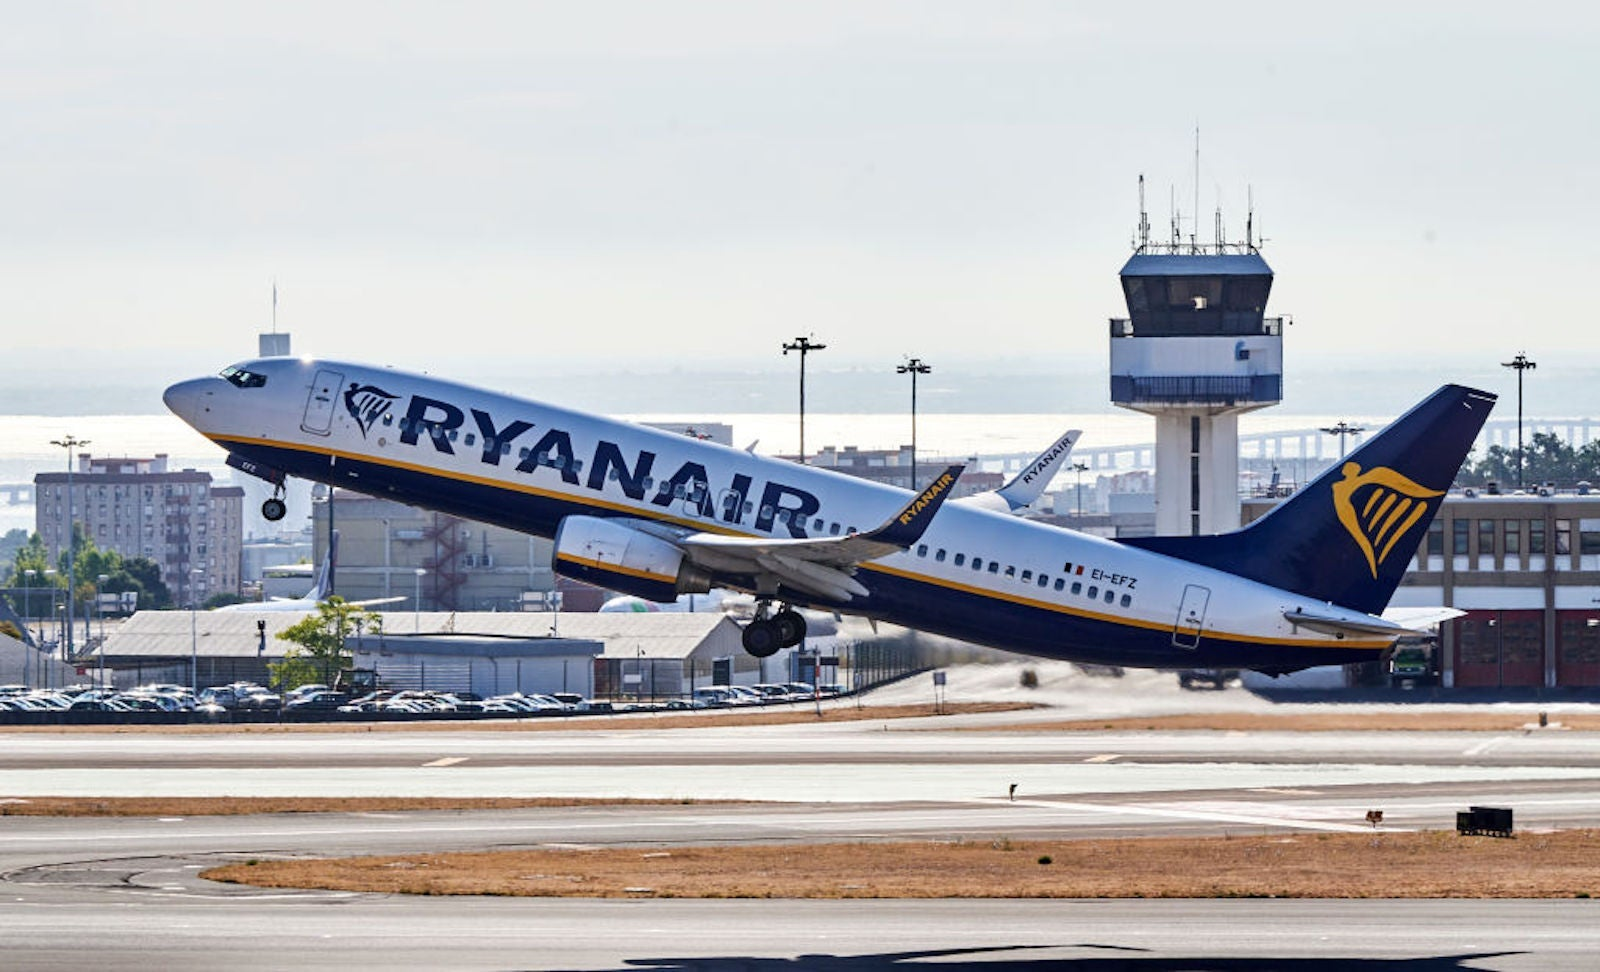 Ryanair threatens to ban customers for credit card chargebacks ... unless they return their refund